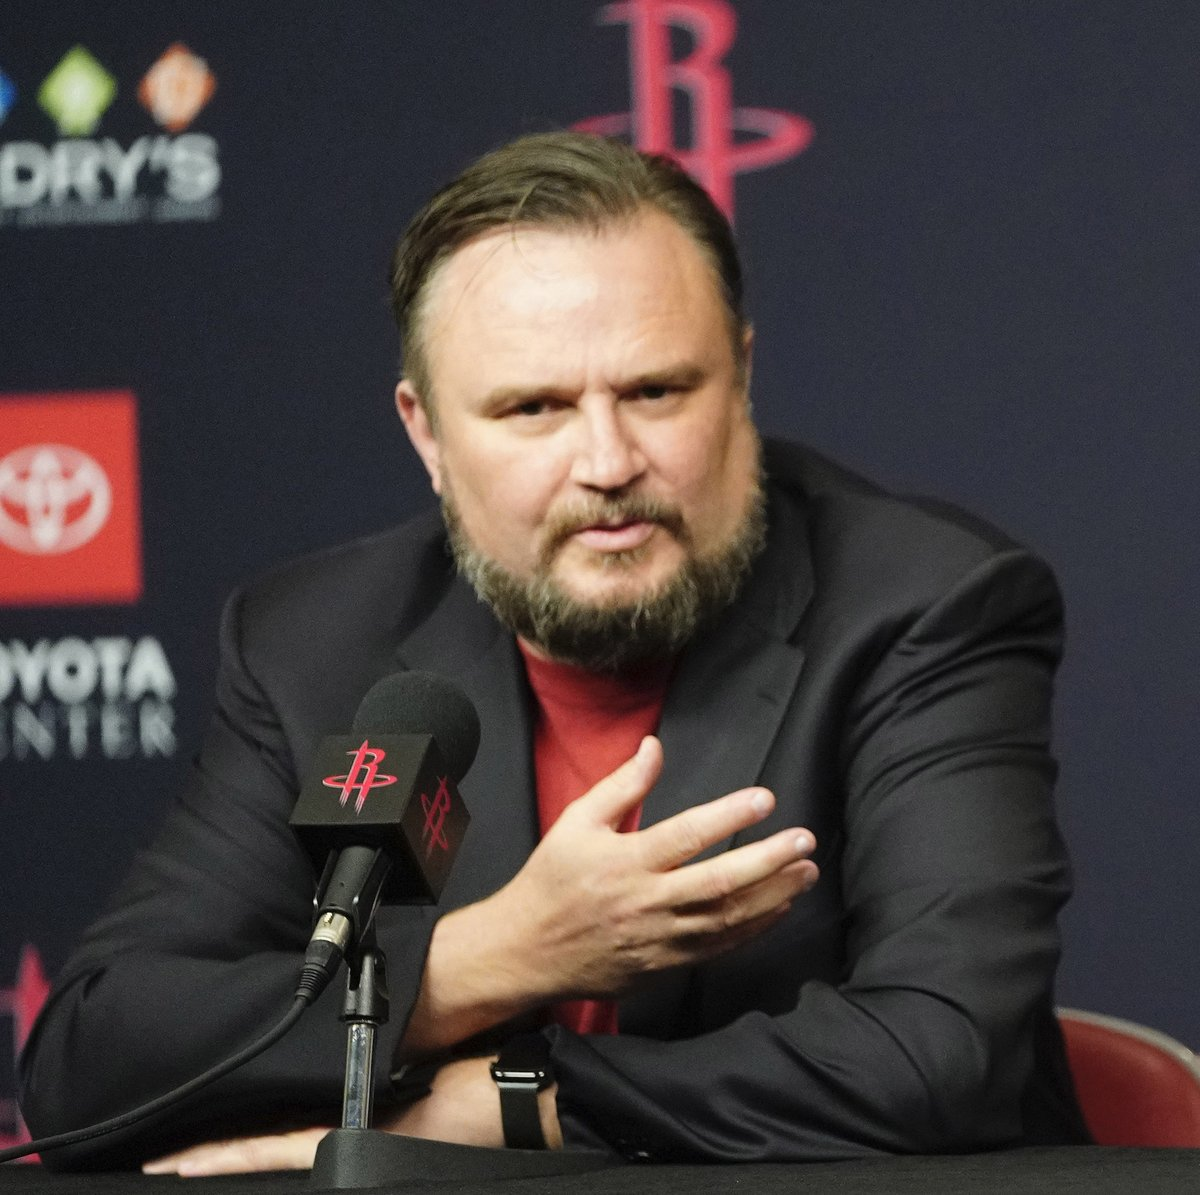 Story on change coming to the #Sixers with Daryl Morey, plus columns on some #76ers free agent possibilities, needing a contributor from five picks in the #NBADraft, the realities of trading a bad contract and more: https://t.co/Mkh0120kfj #NBA https://t.co/JQTSEYpYJJ